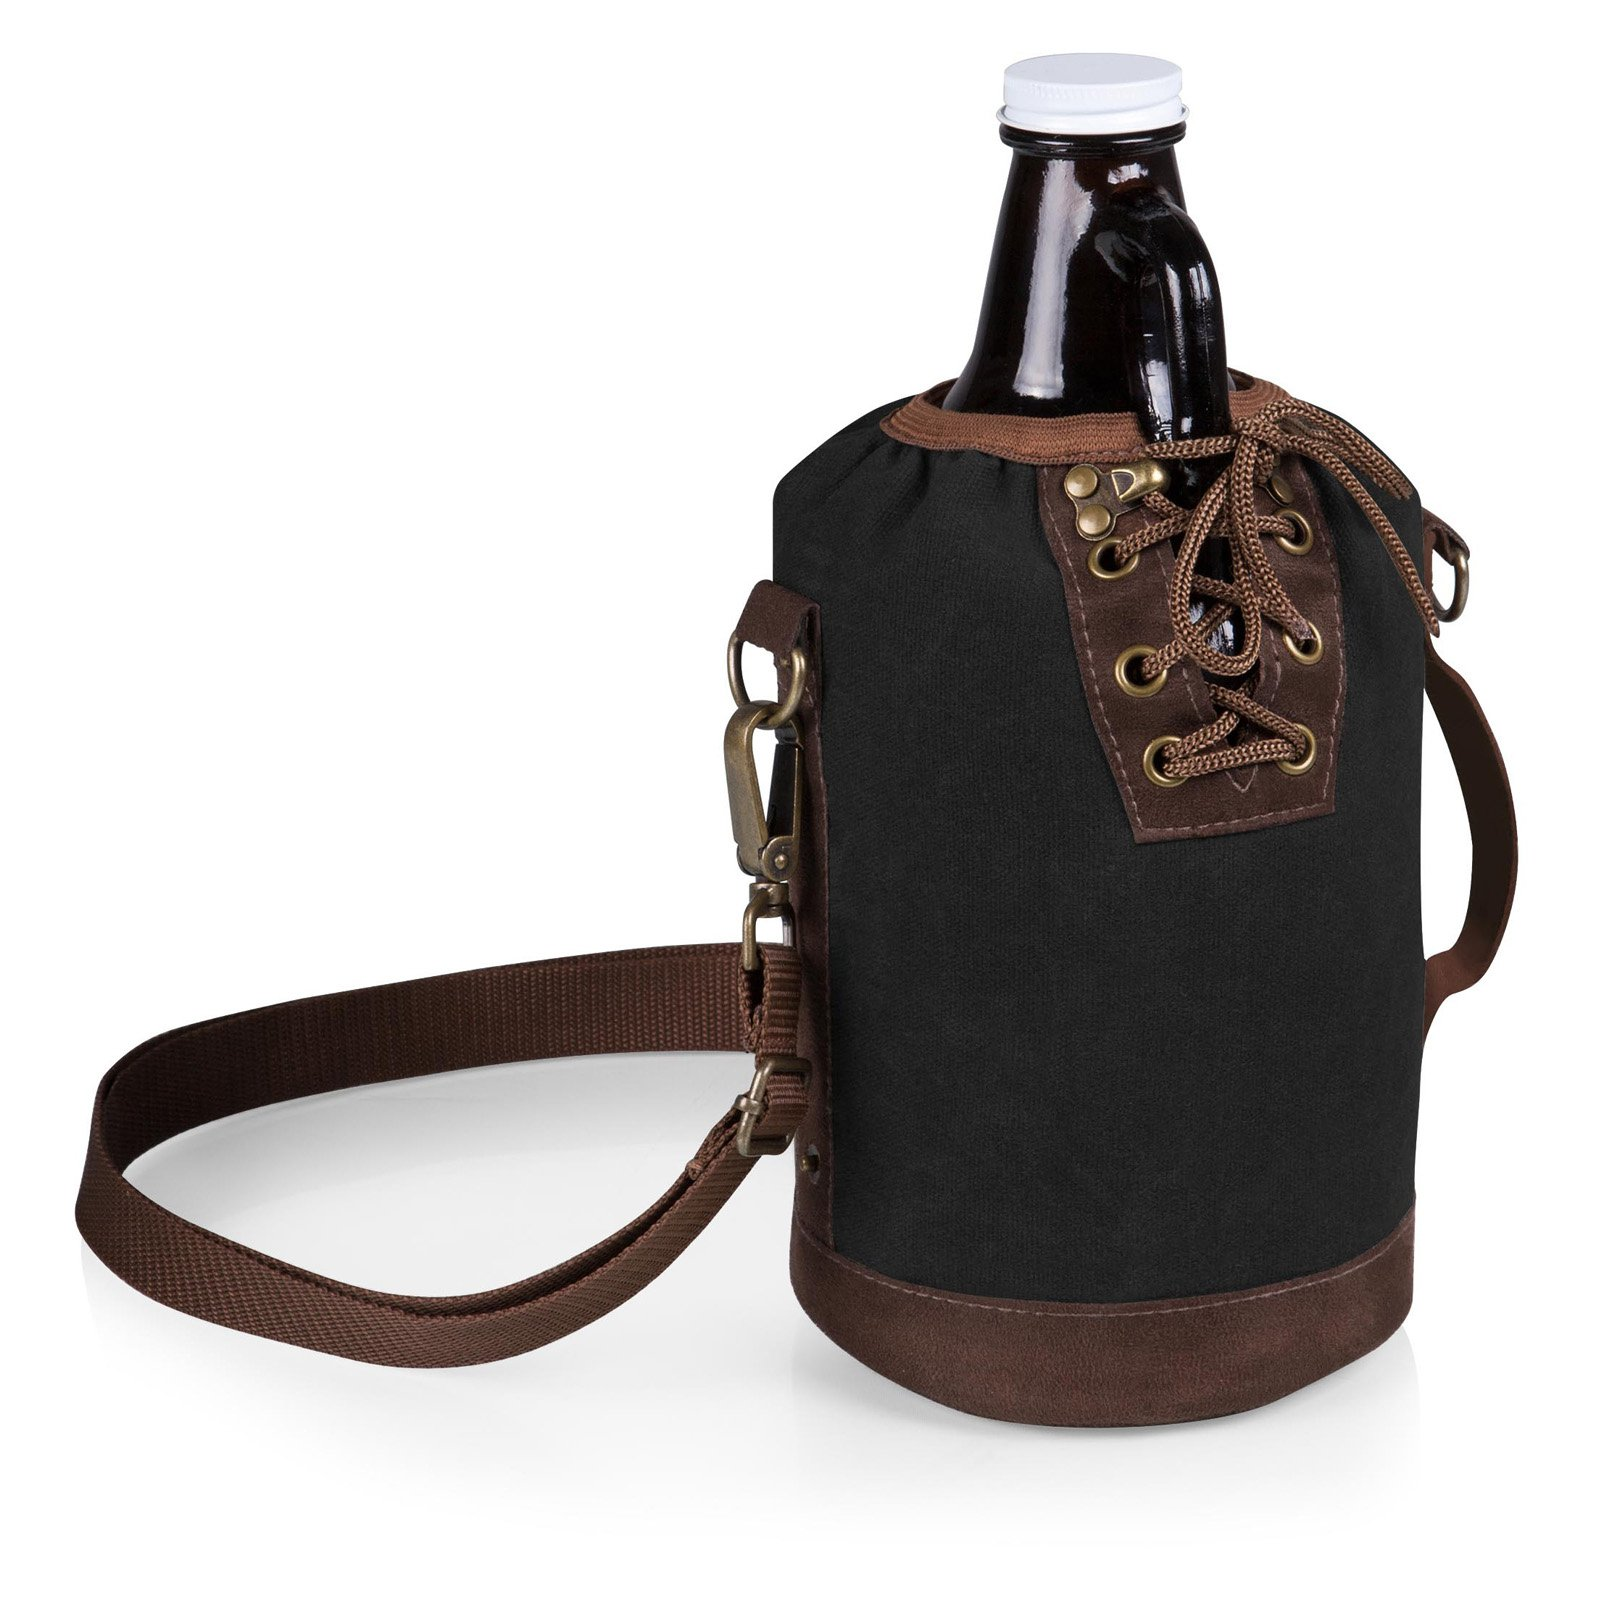 Legacy Insulated Growler Tote with 64 oz. Glass Growler